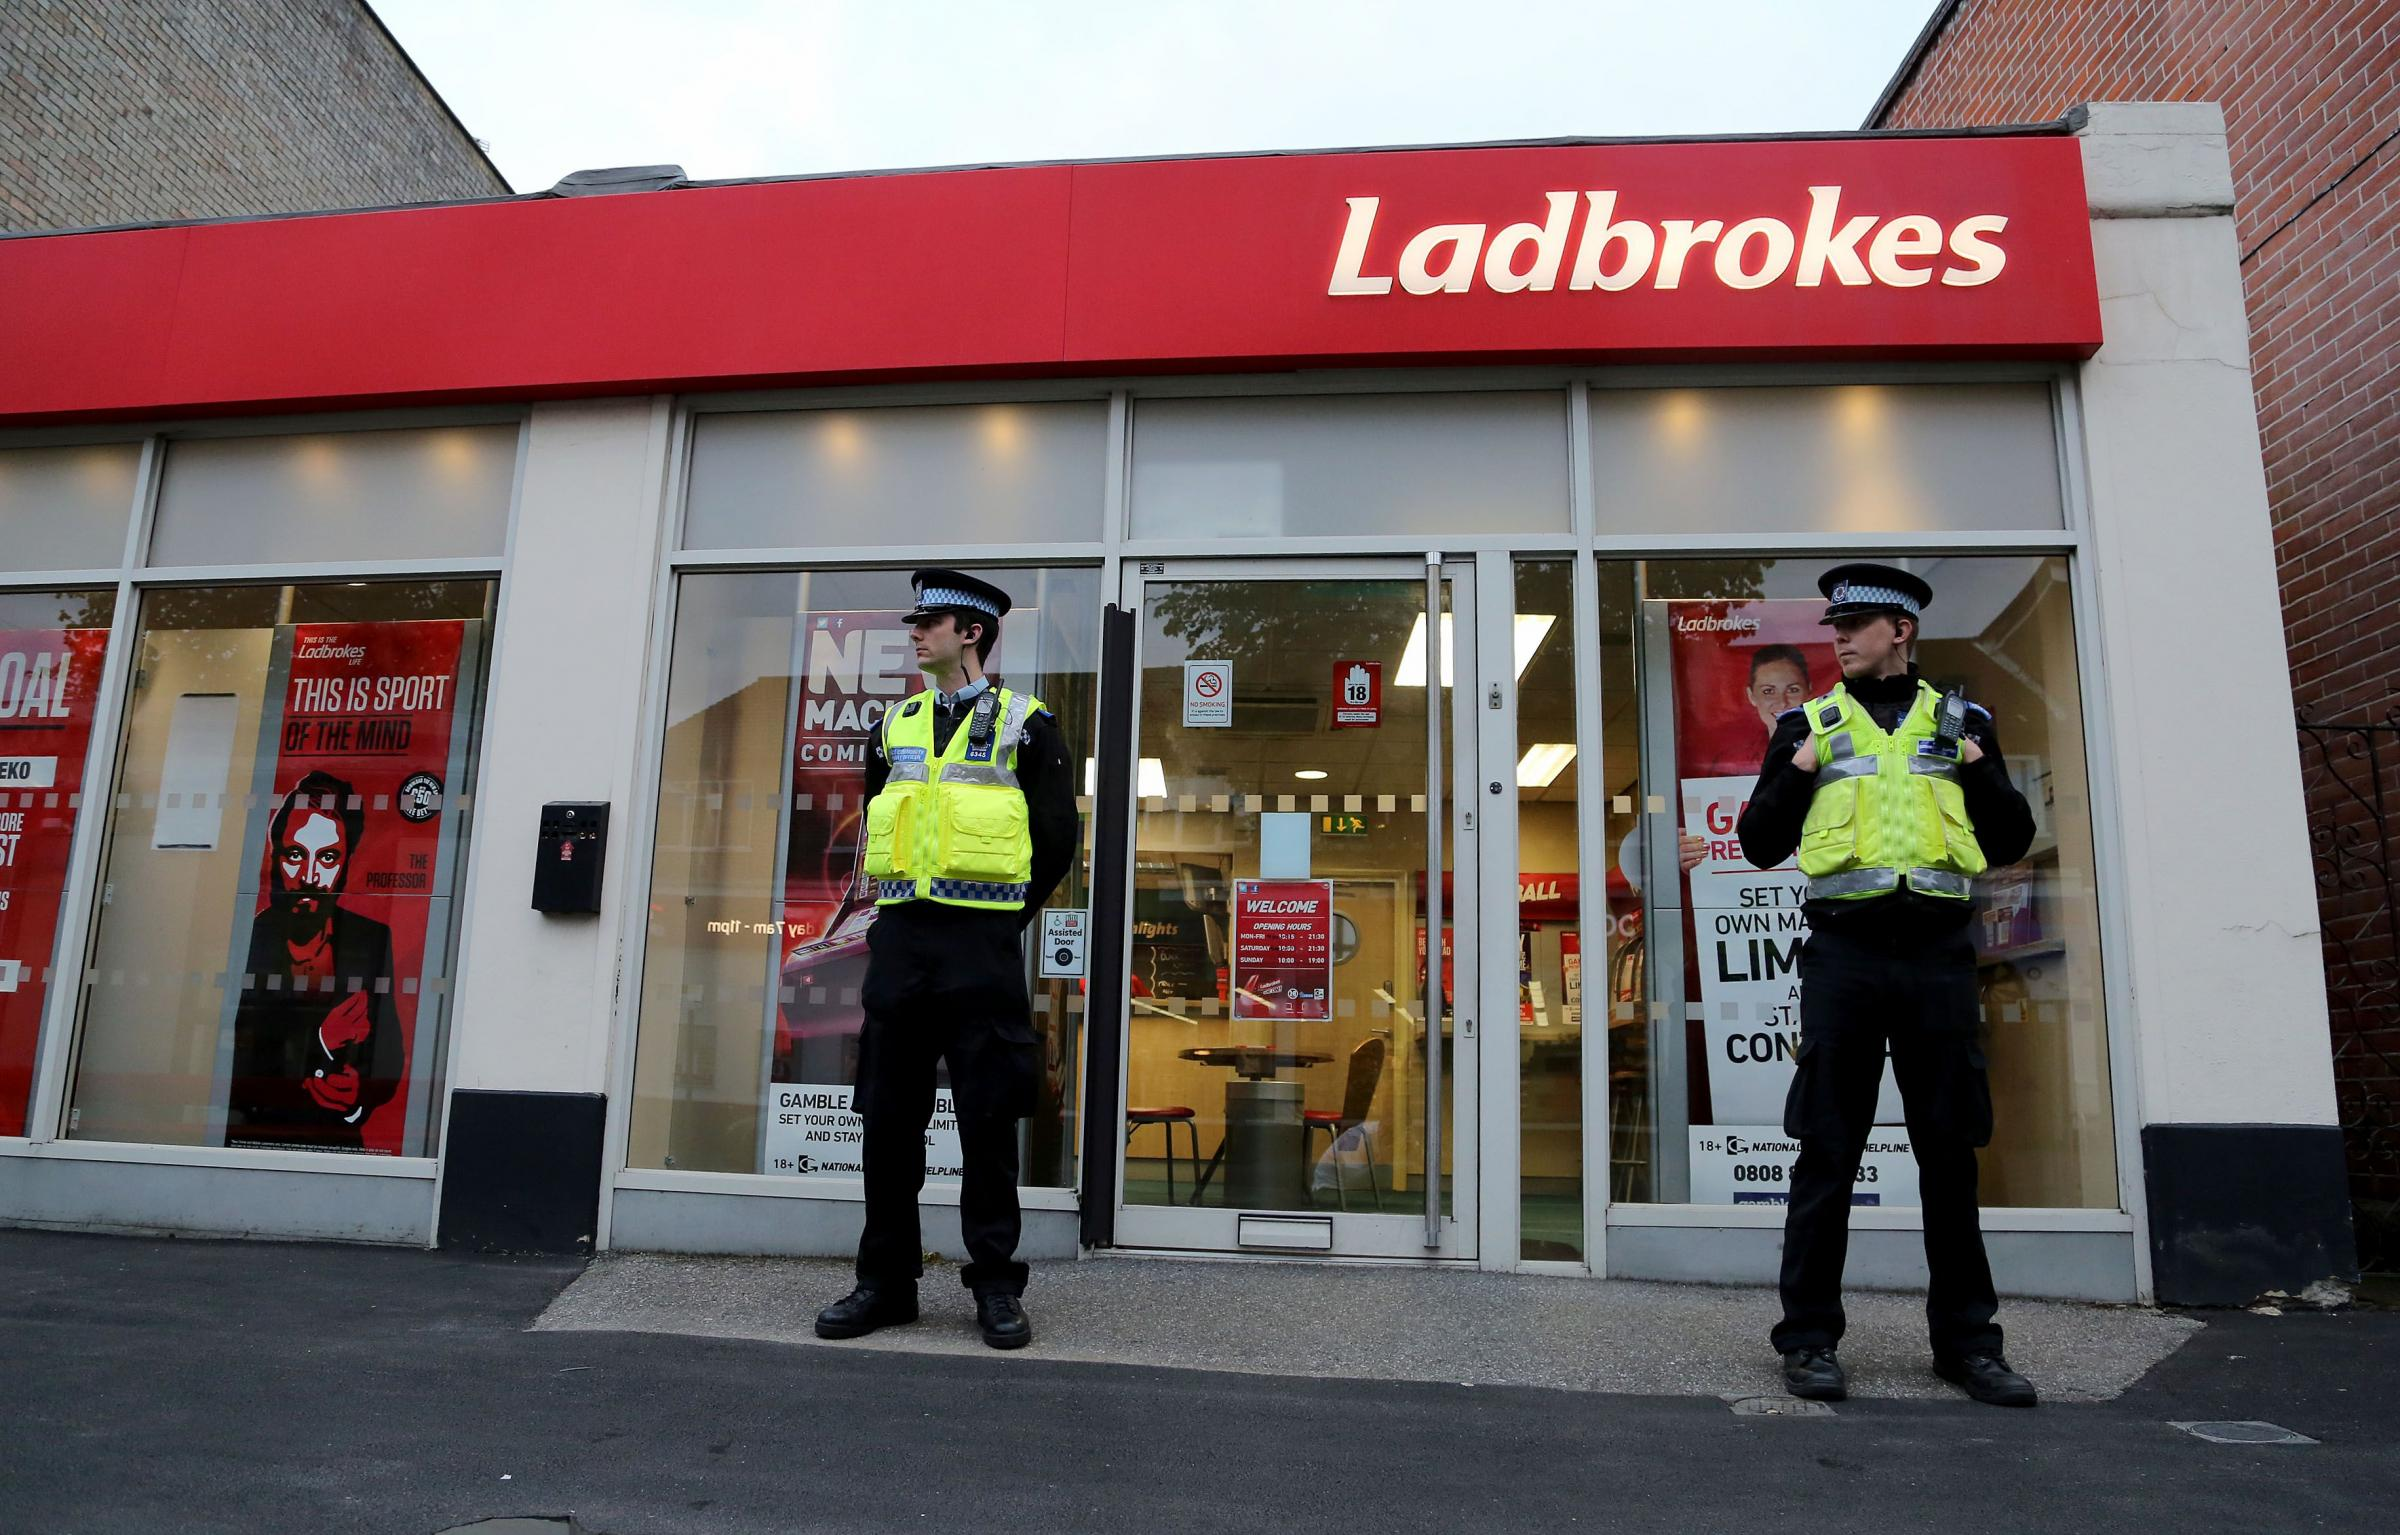 Man arrested in connection with betting shop robberies